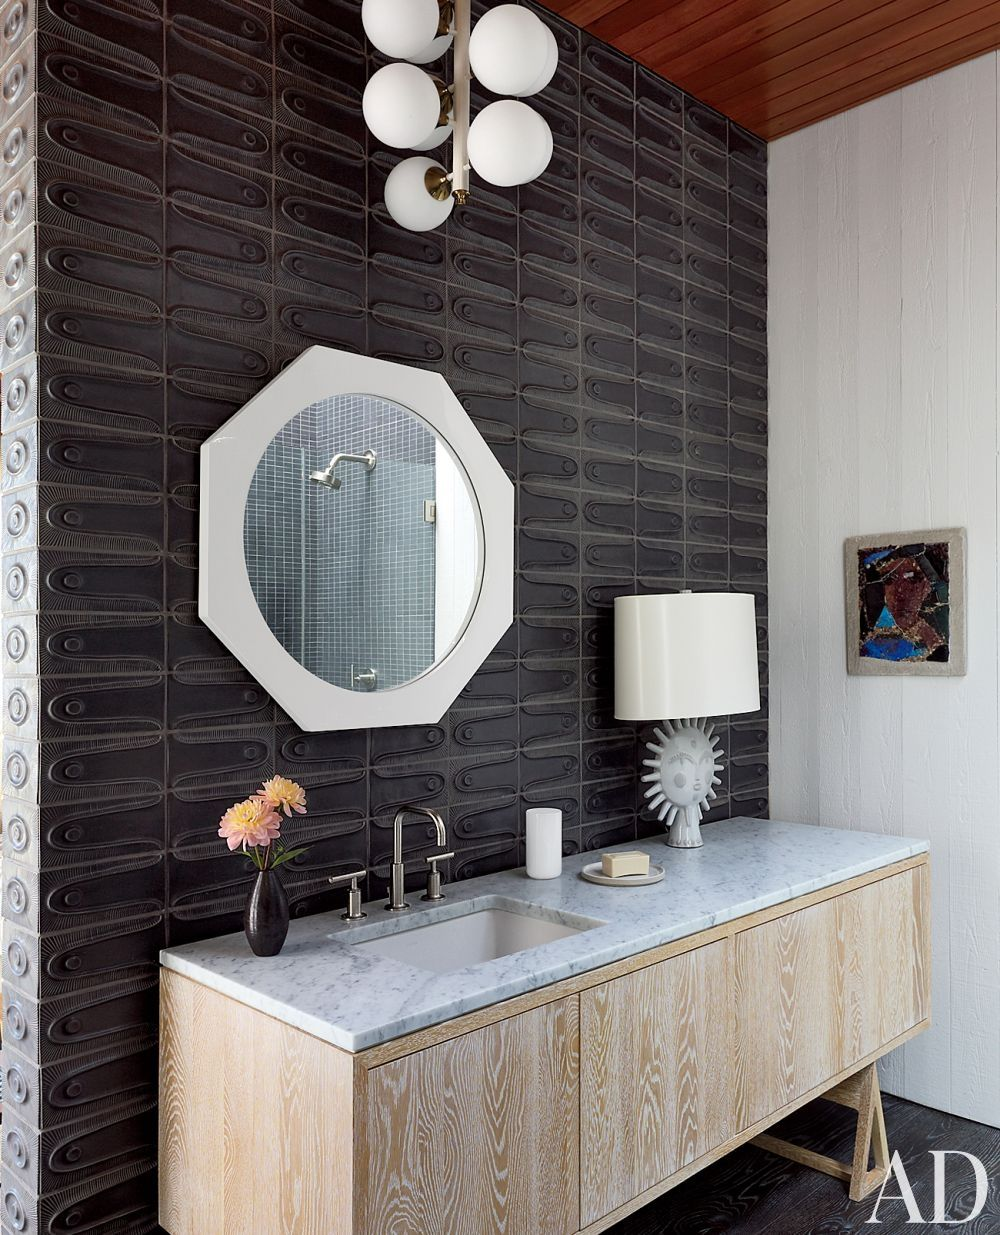 Charmant Contemporary Bathroom By Jonathan Adler And Gray Organschi Architecture In  Shelter Island, New York